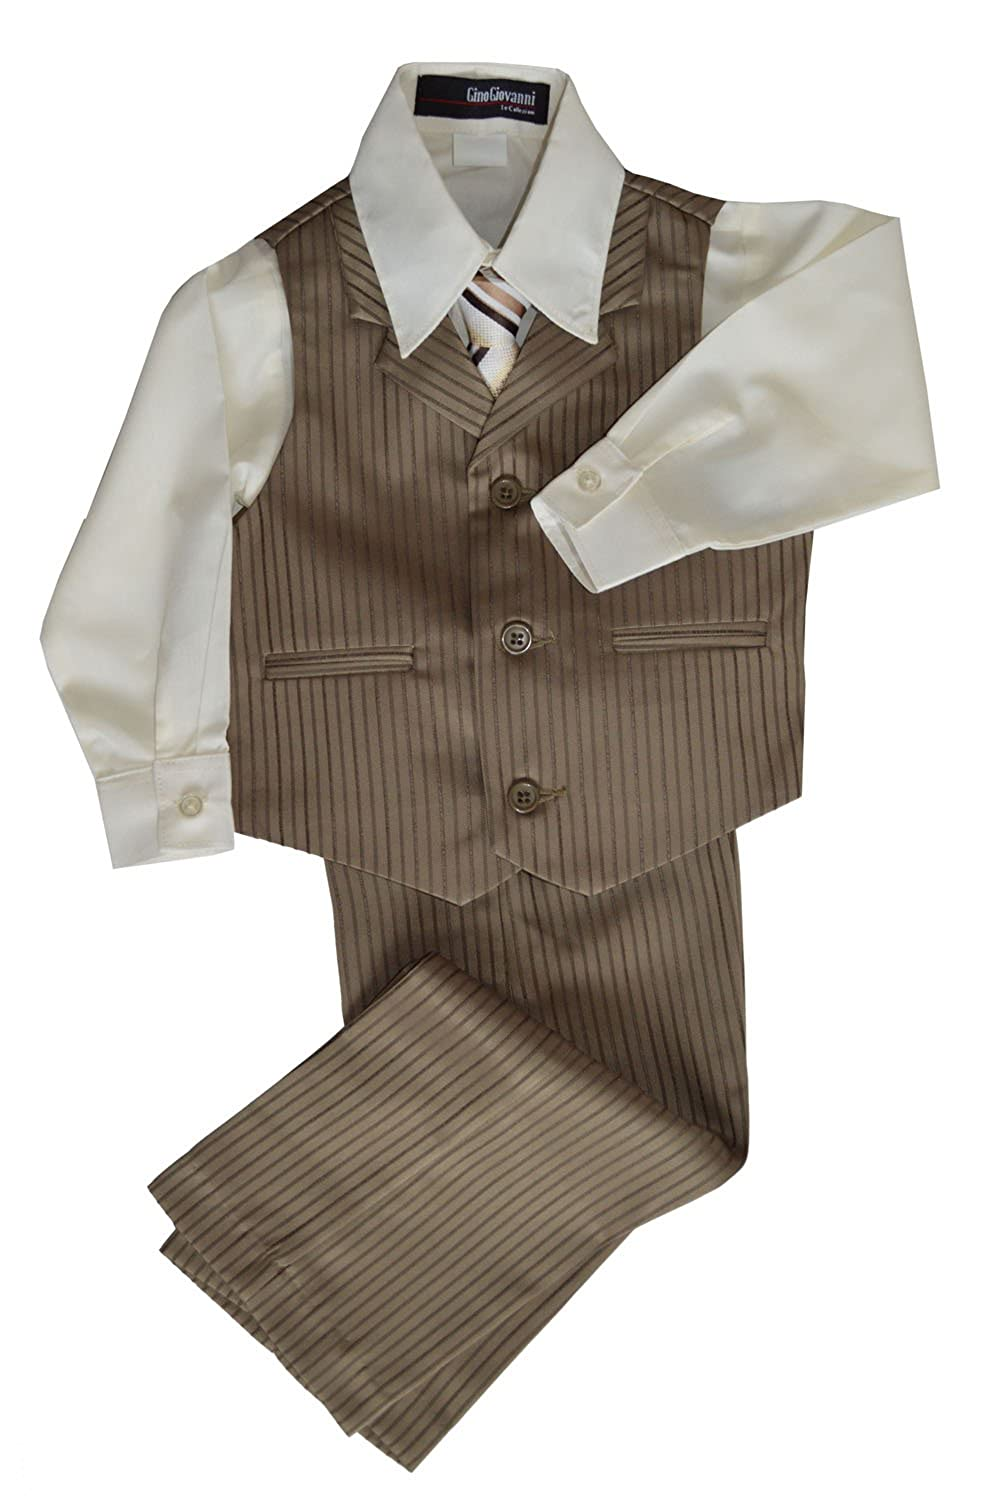 Vintage Style Children's Clothing: Girls, Boys, Baby, Toddler Gino Giovanni Pinstripe Boys Formal Dresswear Vest Set $28.18 AT vintagedancer.com